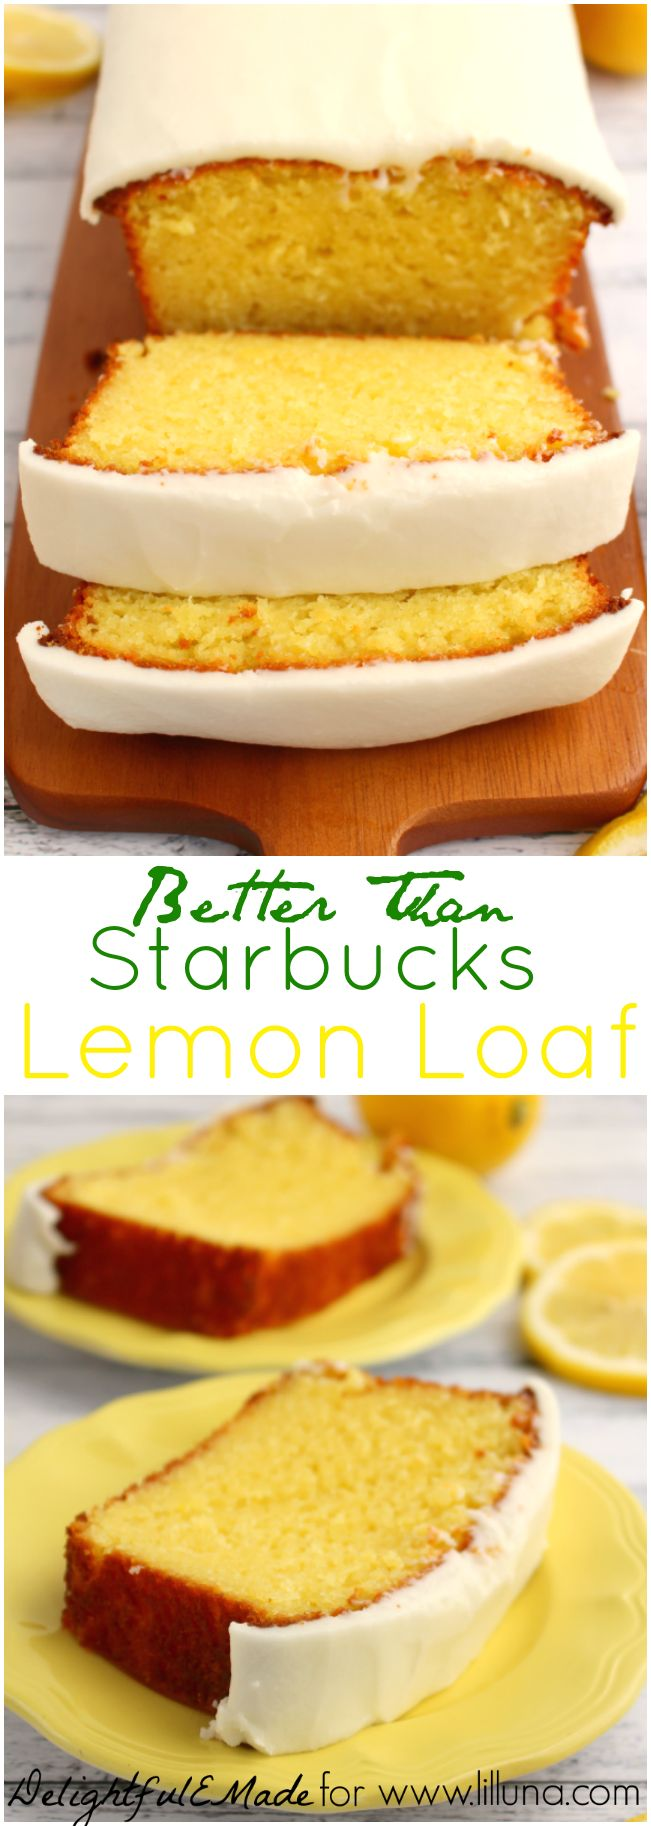 If you like Starbucks Lemon Loaf, then you'll love this moist, delicious Lemon cake!